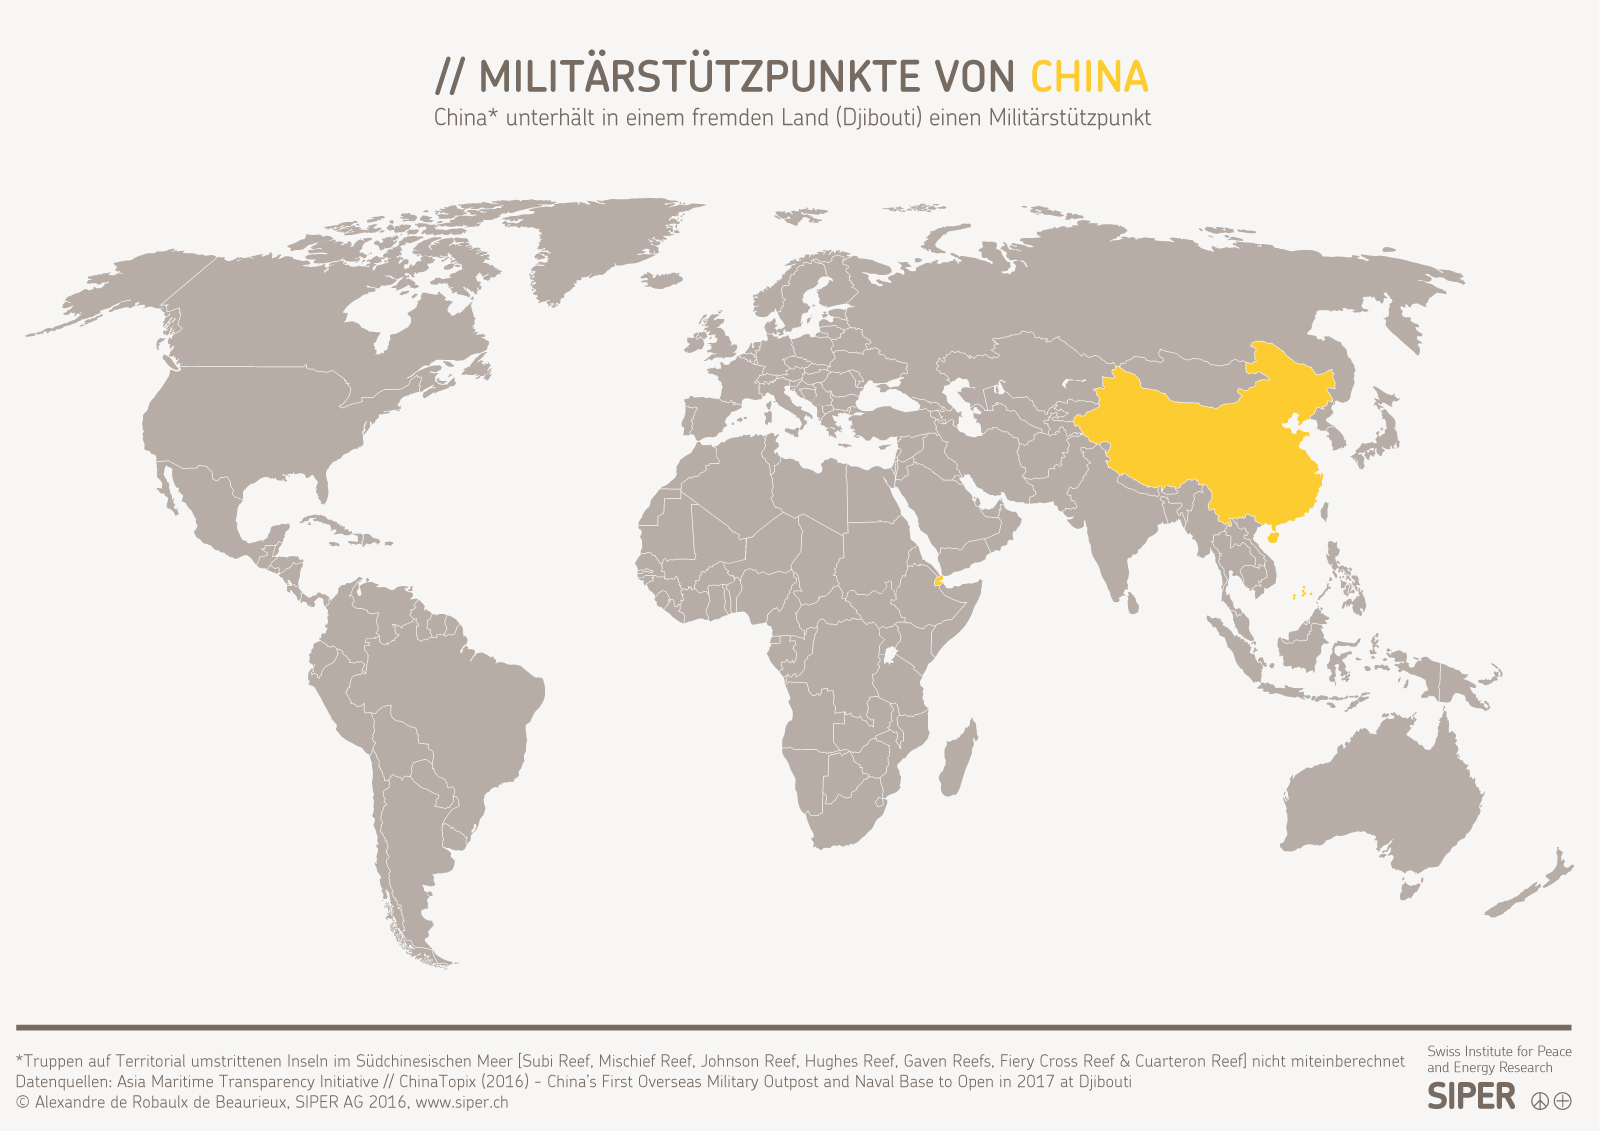 https://www.siper.ch/de/assets/uploads/images/diagrams/SIPER-Grafik-Militaerstuetzpunkte-von-China.jpg